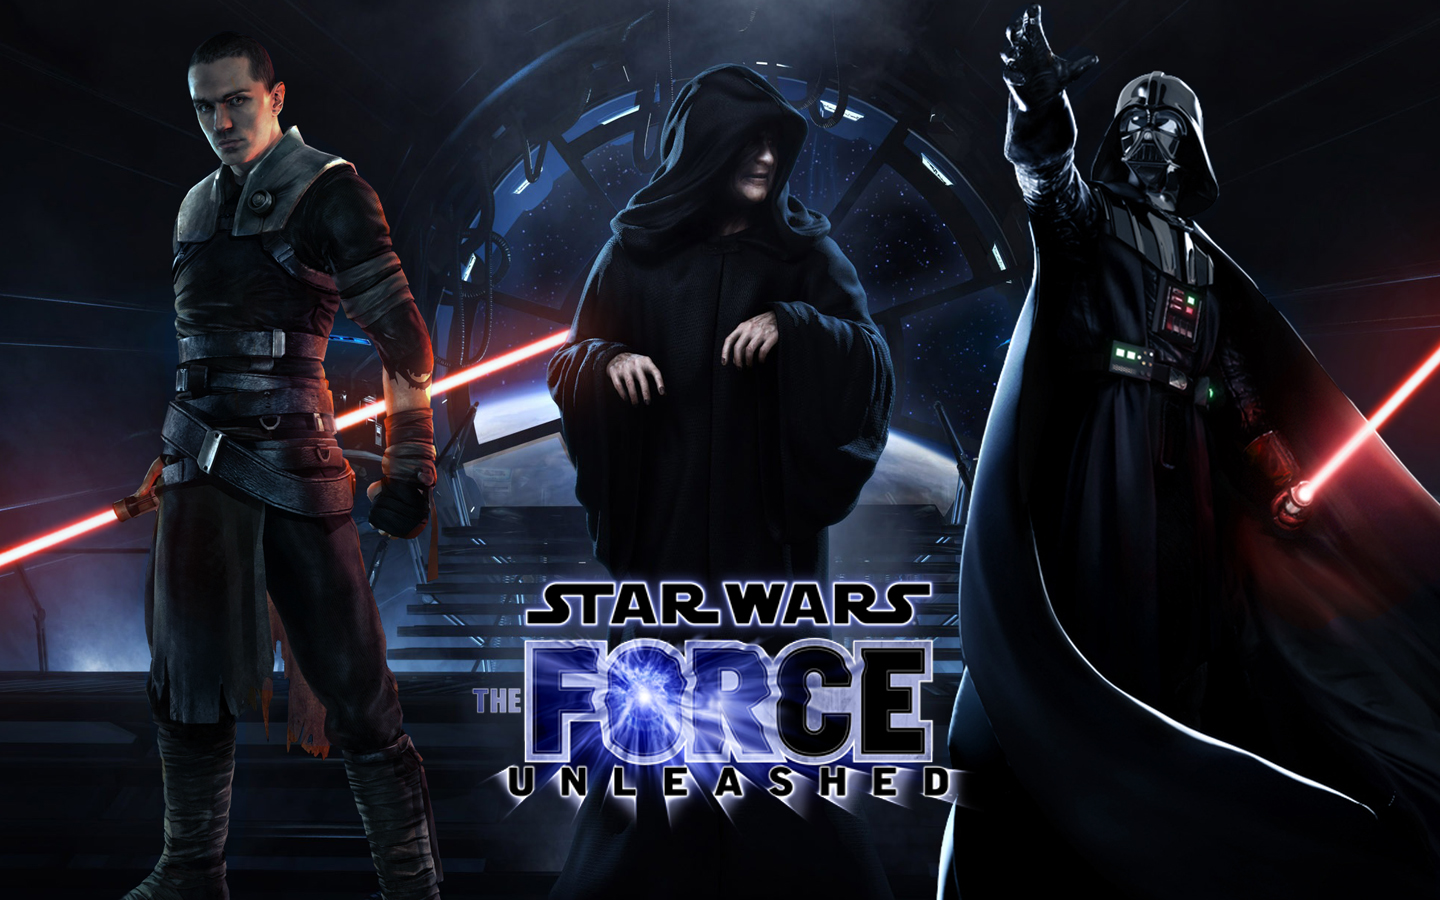 Star wars the force unleashed by thesumu